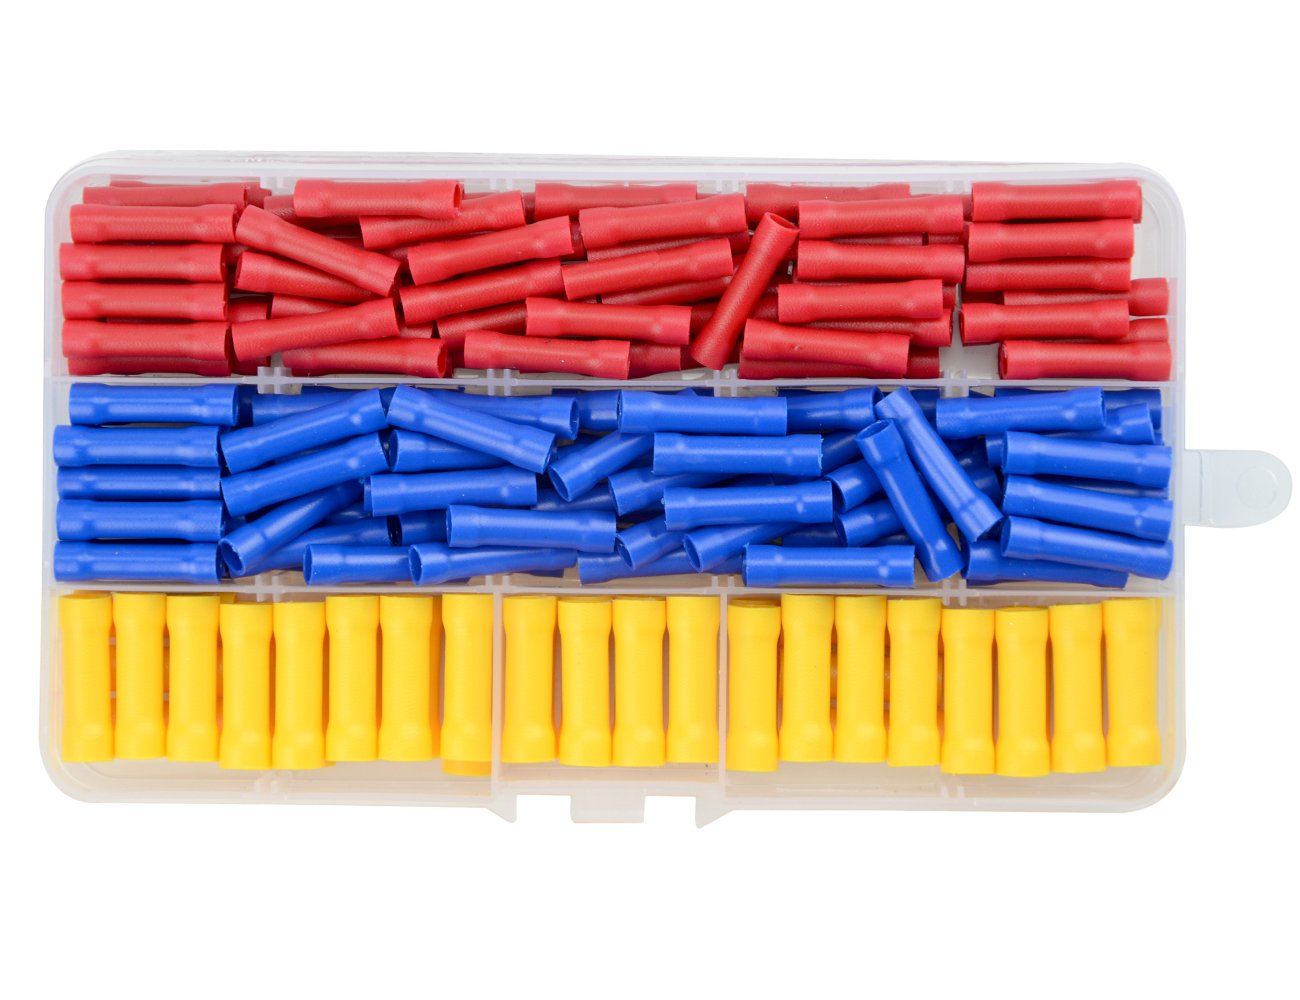 WGCD 200 PCS Insulated Straight Wire Butt Splice Terminals Electrical Crimp Connector Assortment Kit by WMYCONGCONG